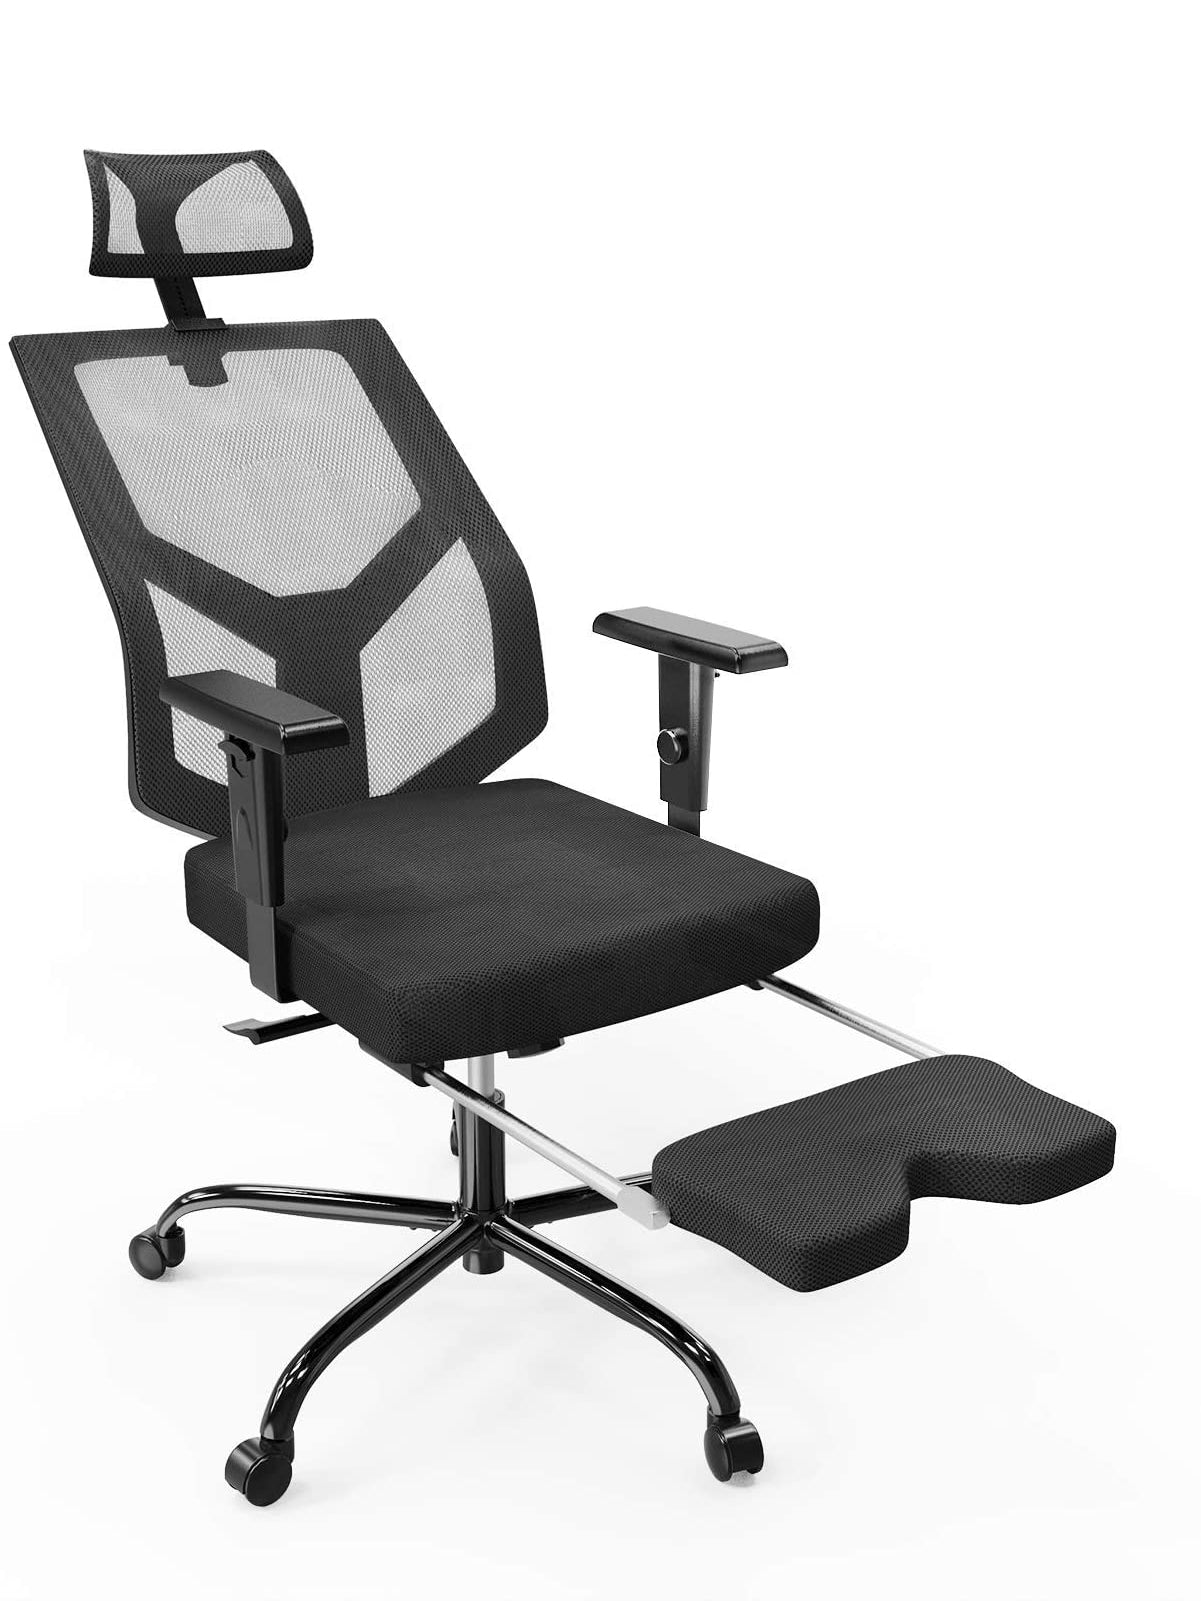 Smugdesk Mesh Ergonomic Chair Adjustable Armrest/Headrest Rotating Chair with Footrest Lounge Chair